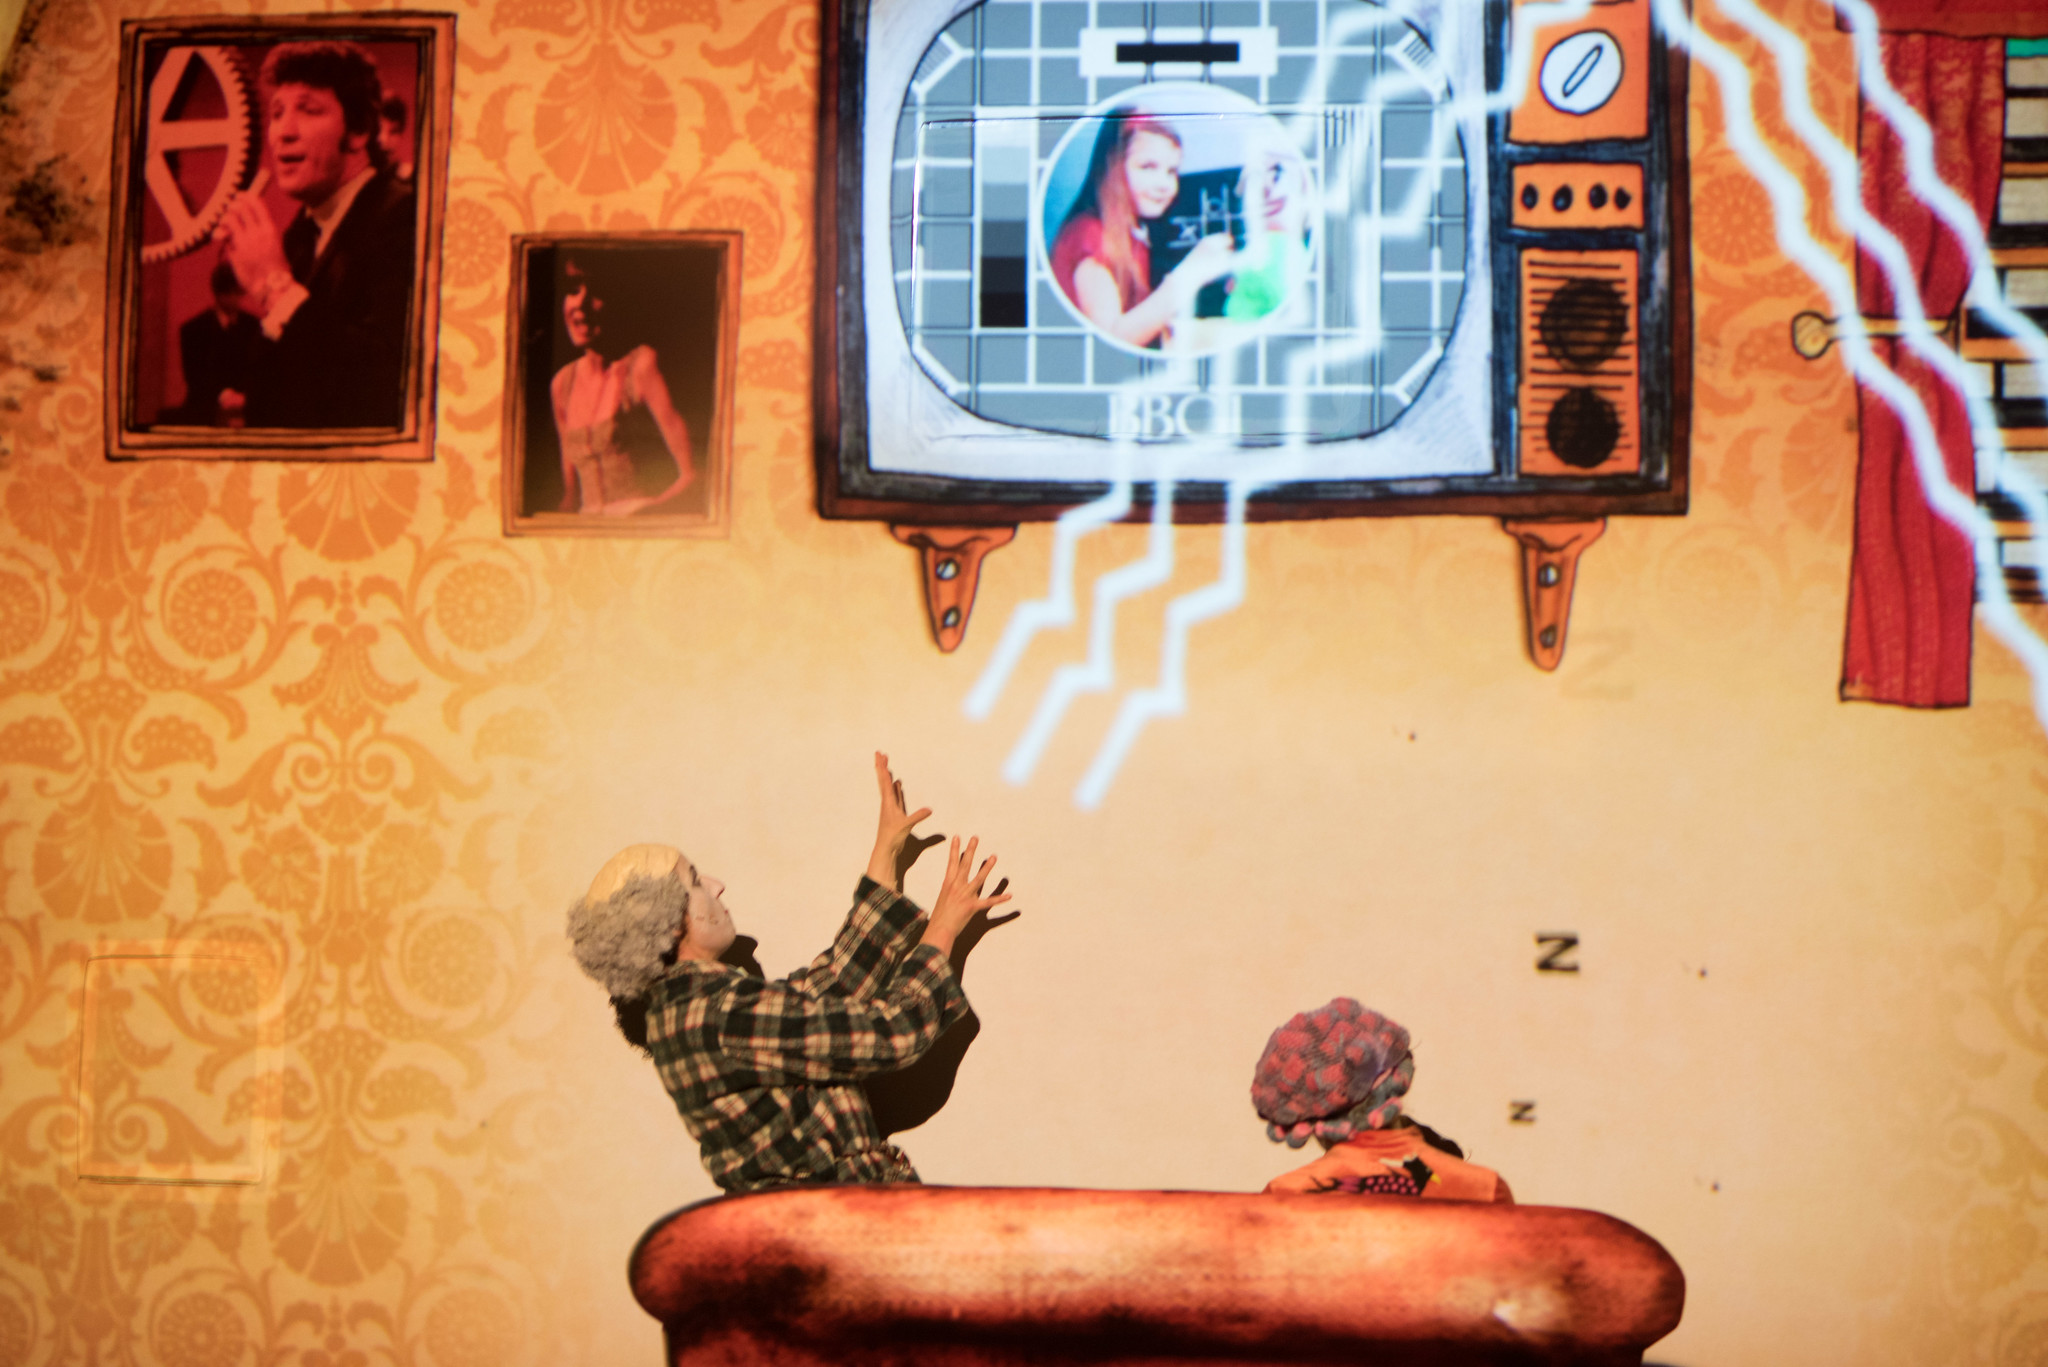 Artwork showing bolts of electricity between person and television screen